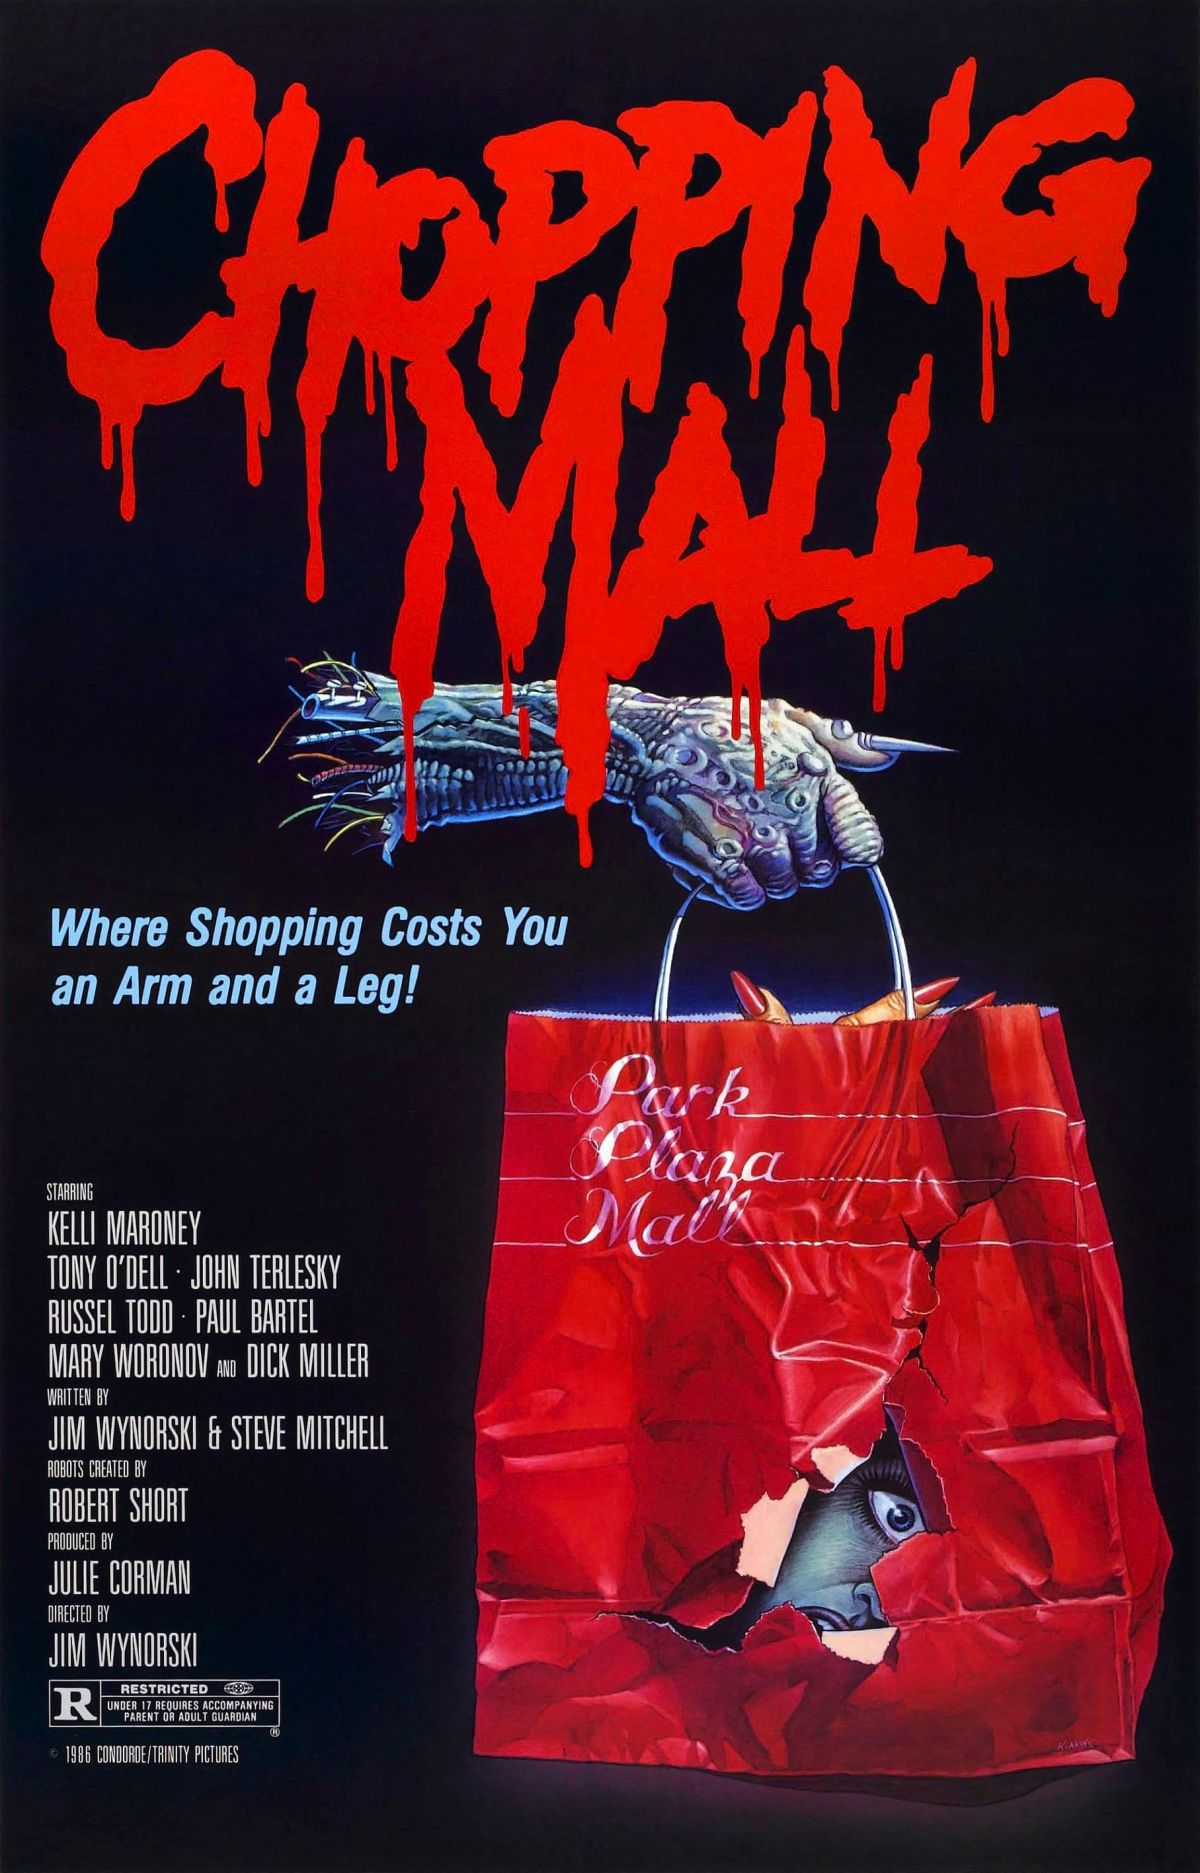 Originally released in a limited run under the name Killbots, the film didn't do well at the box office, and was then rebranded as Chopping Mall, with a poster that takes the focus off the bots and puts it on the setting.